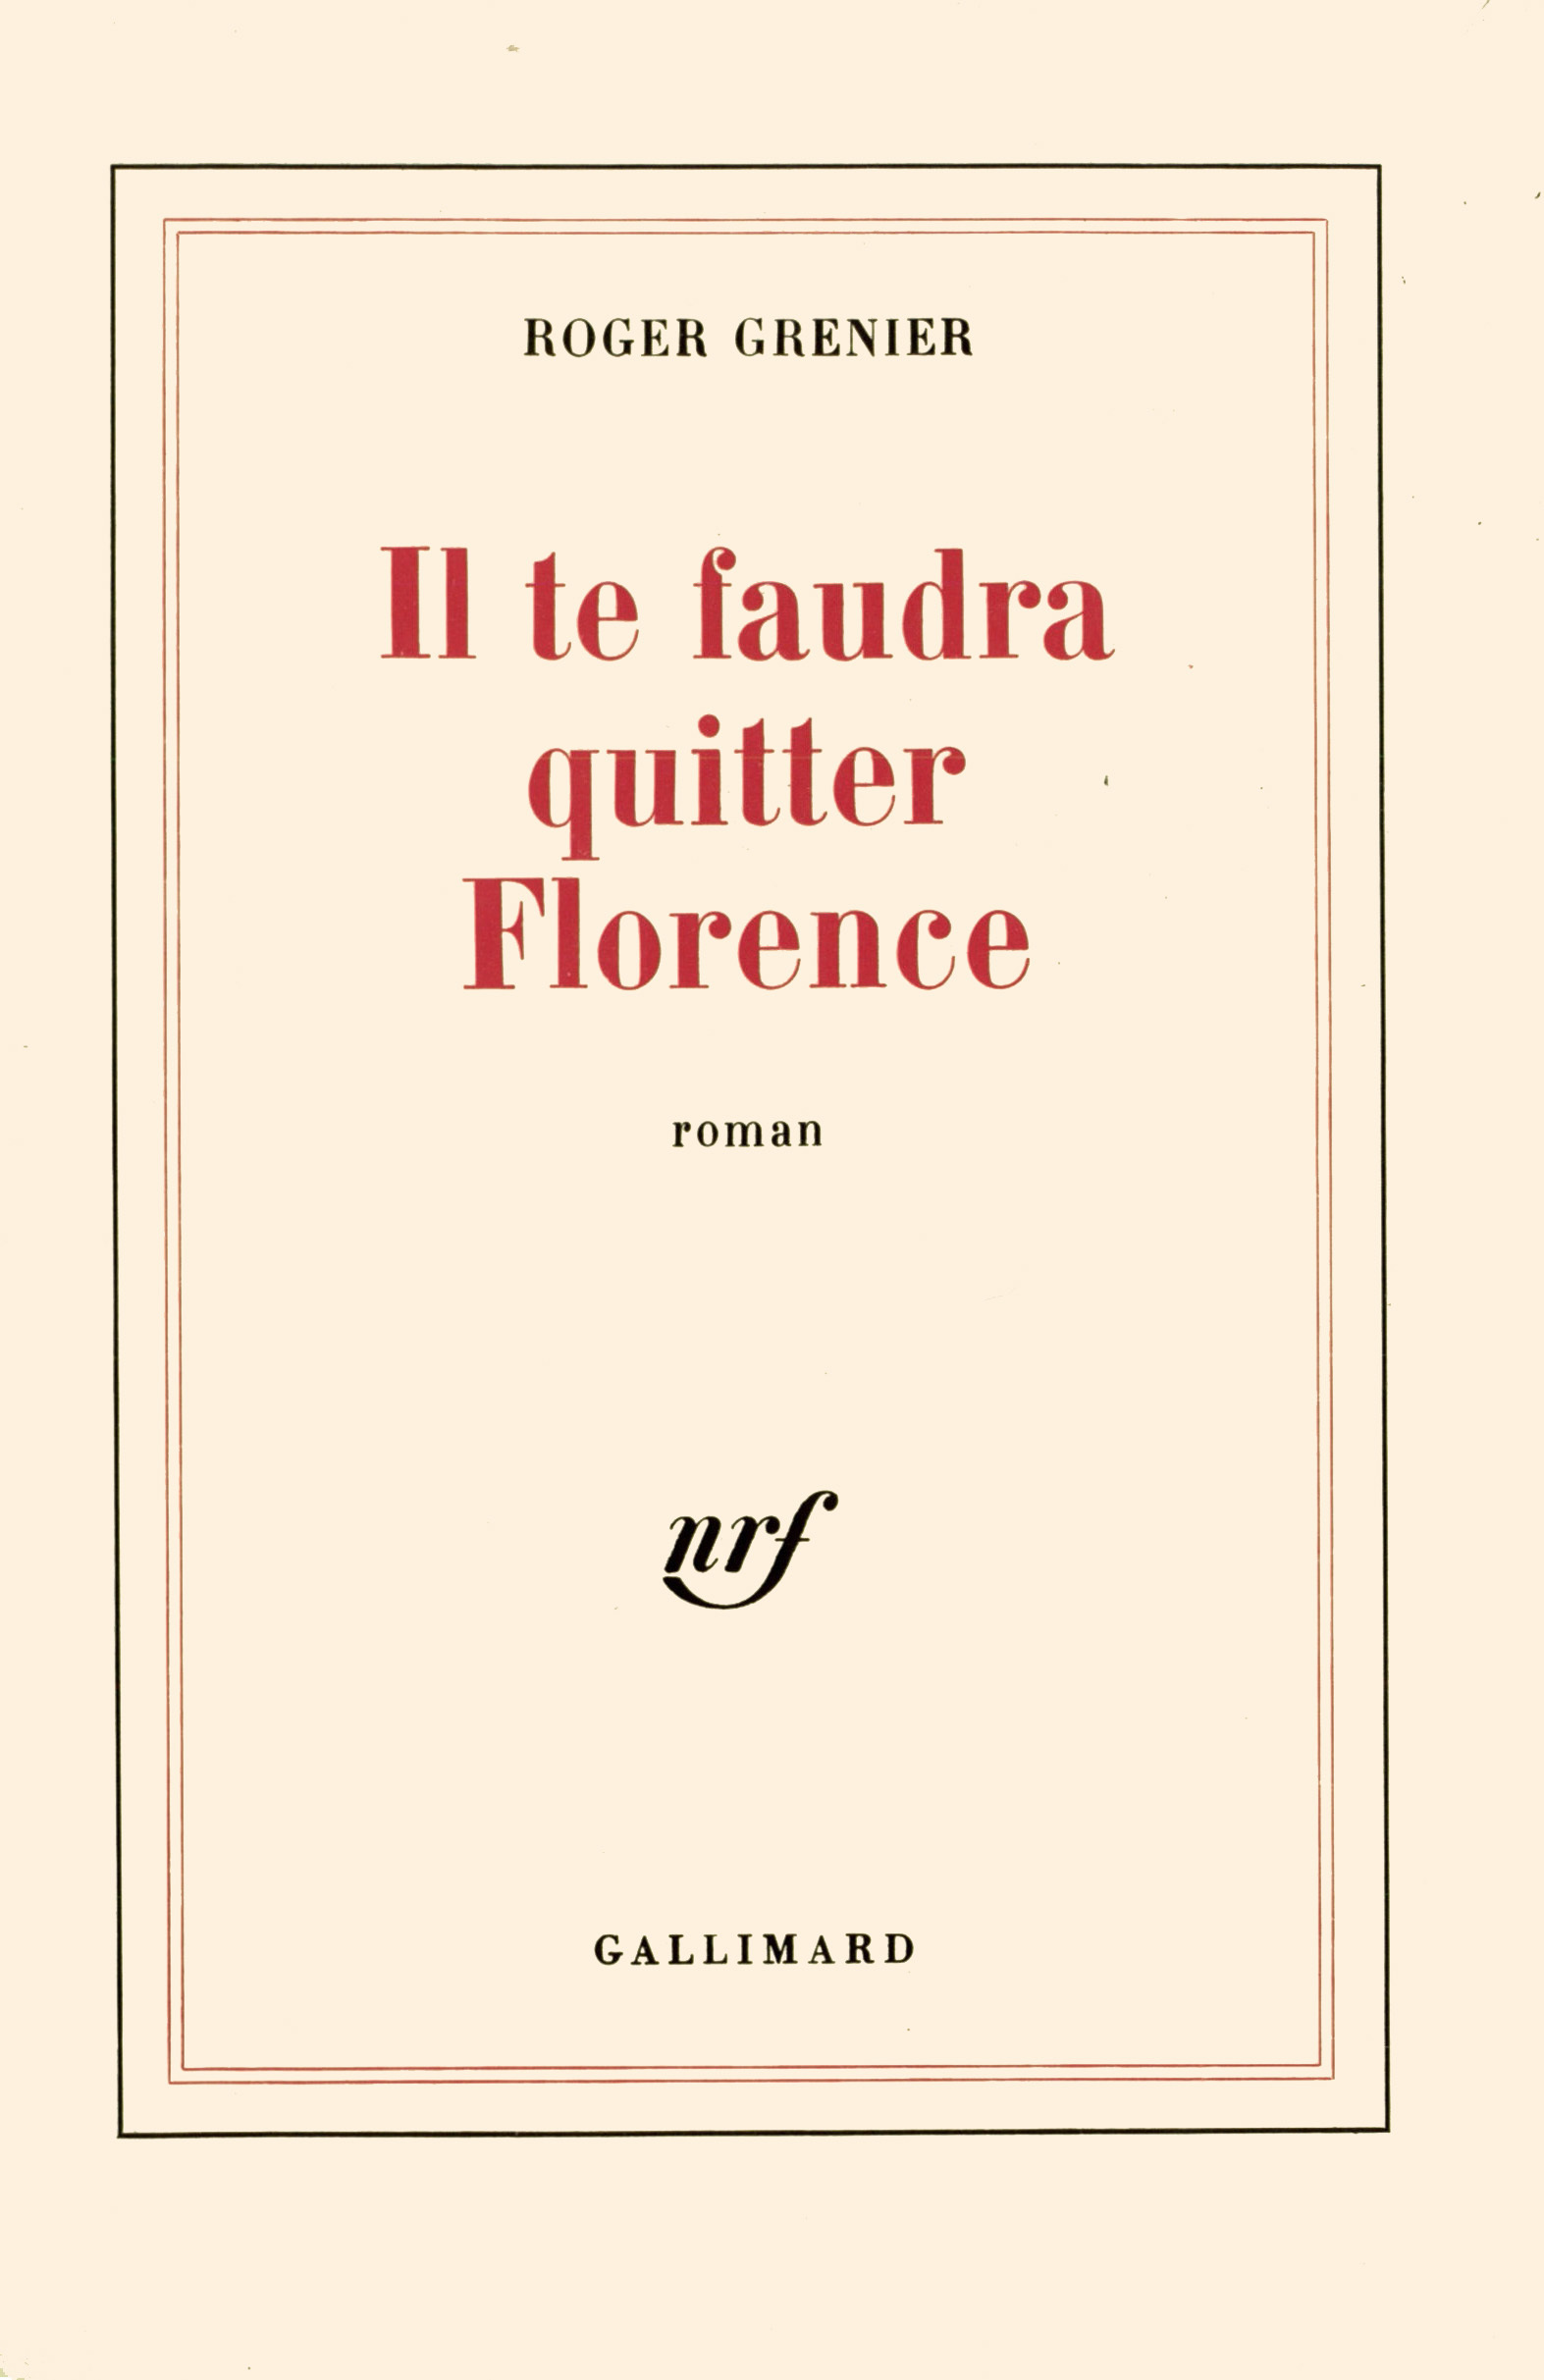 """ IL TE FAUDRA QUITTER FLORENCE "" ROMAN"